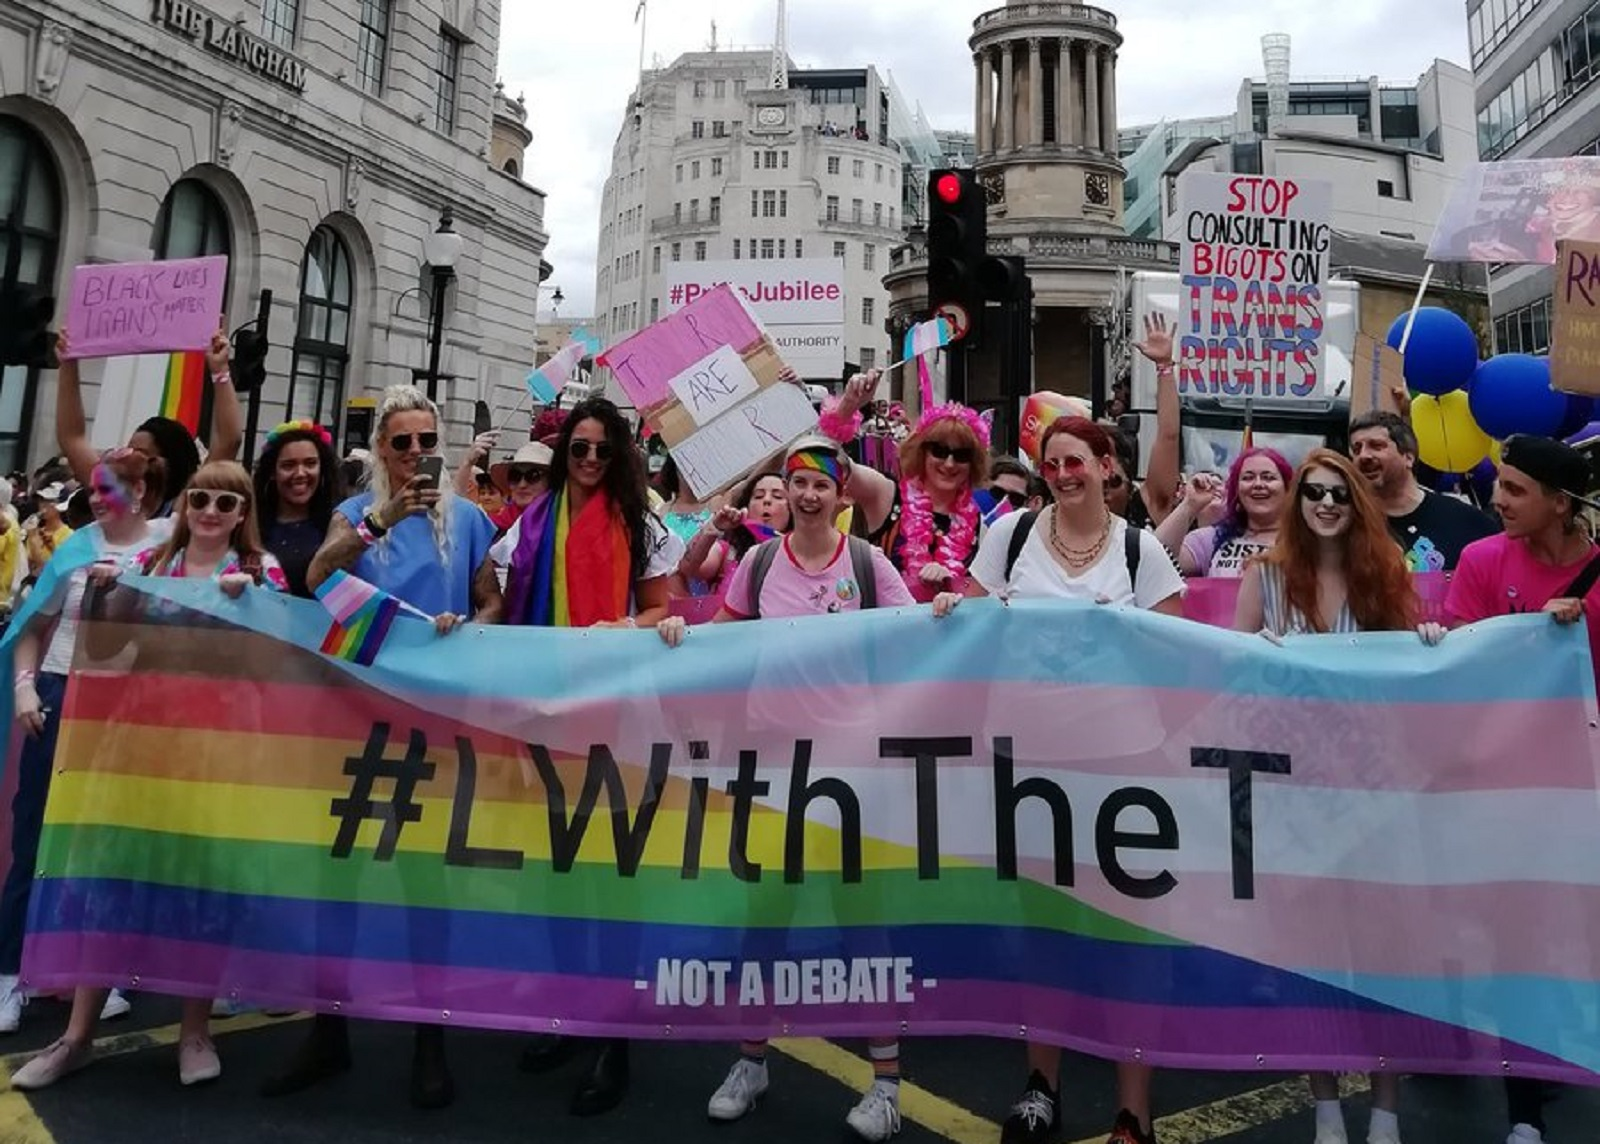 L with the T protesters lead the Pride in London parade